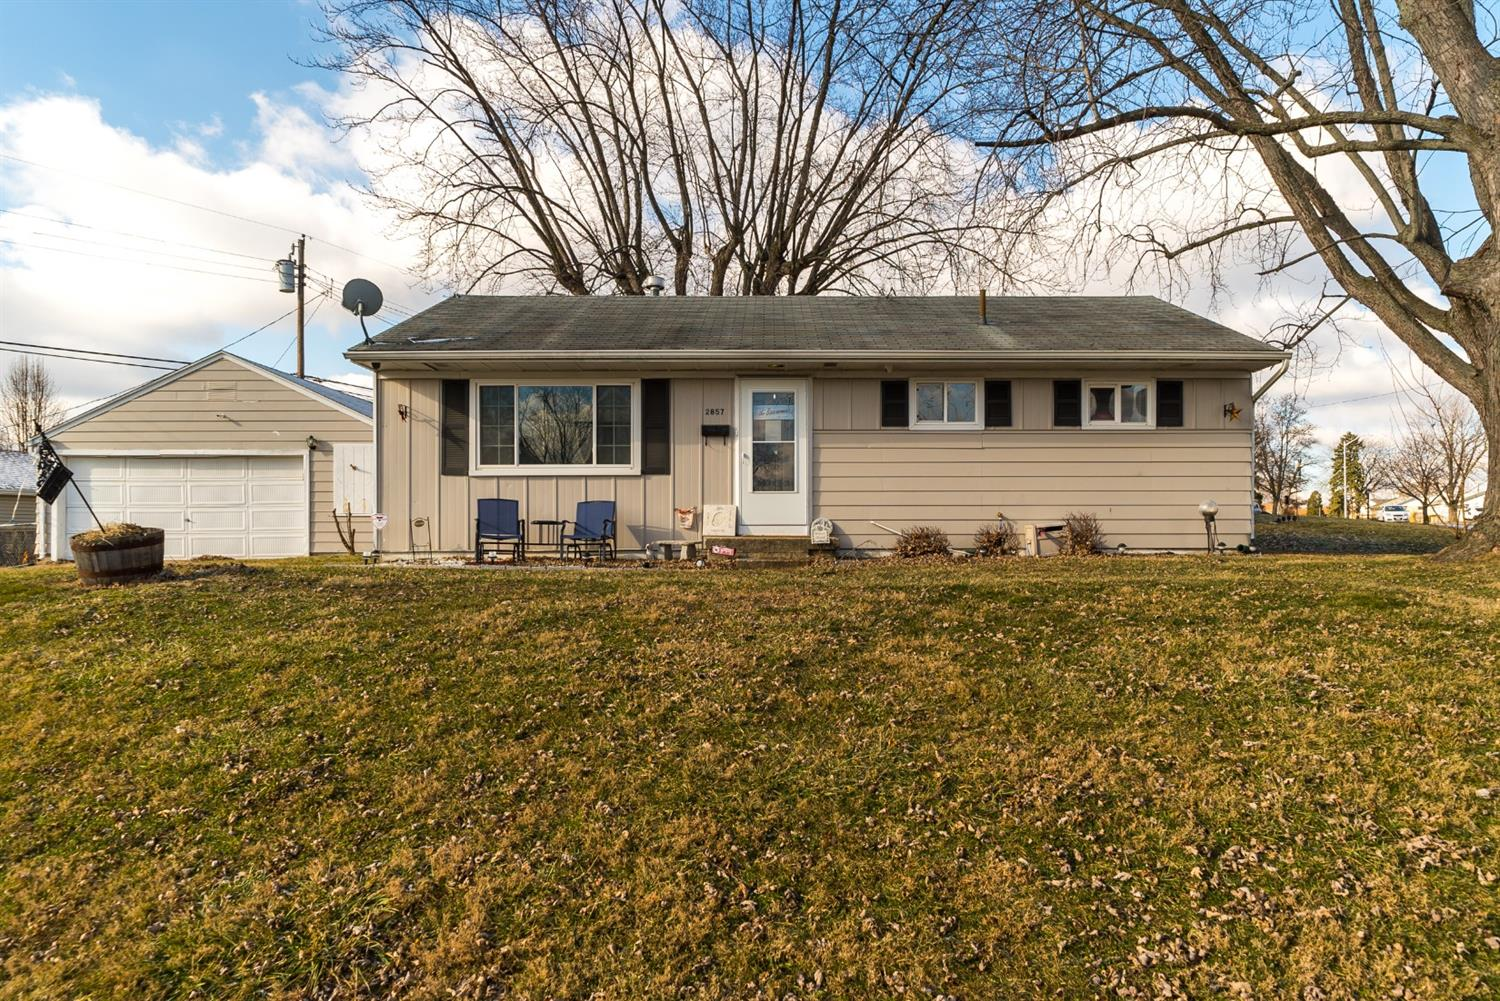 2857 Galewood St Montgomery Co., OH